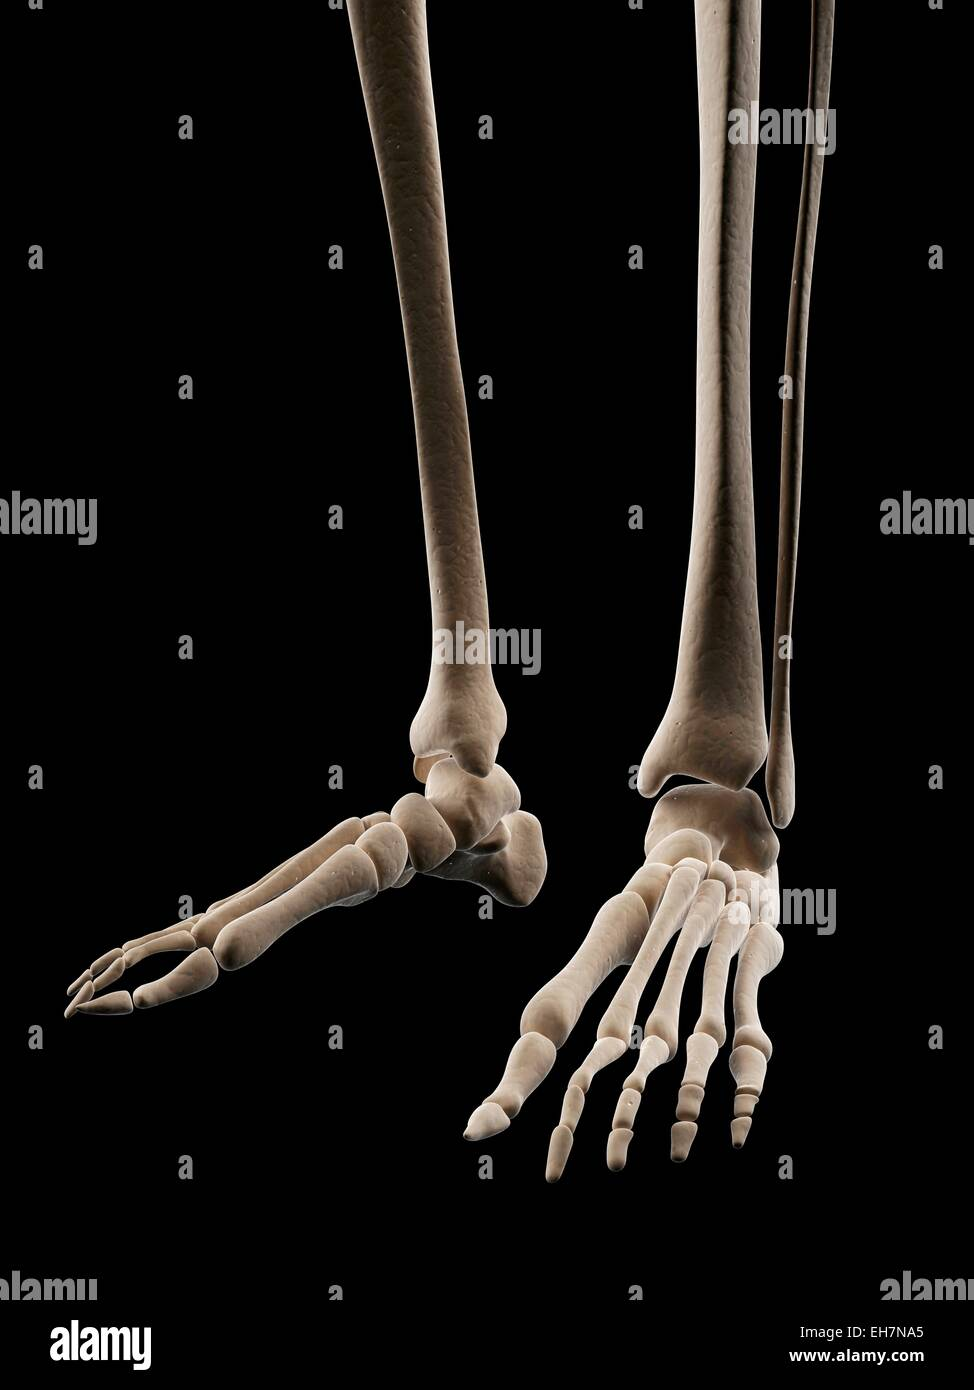 Human foot bones, illustration - Stock Image